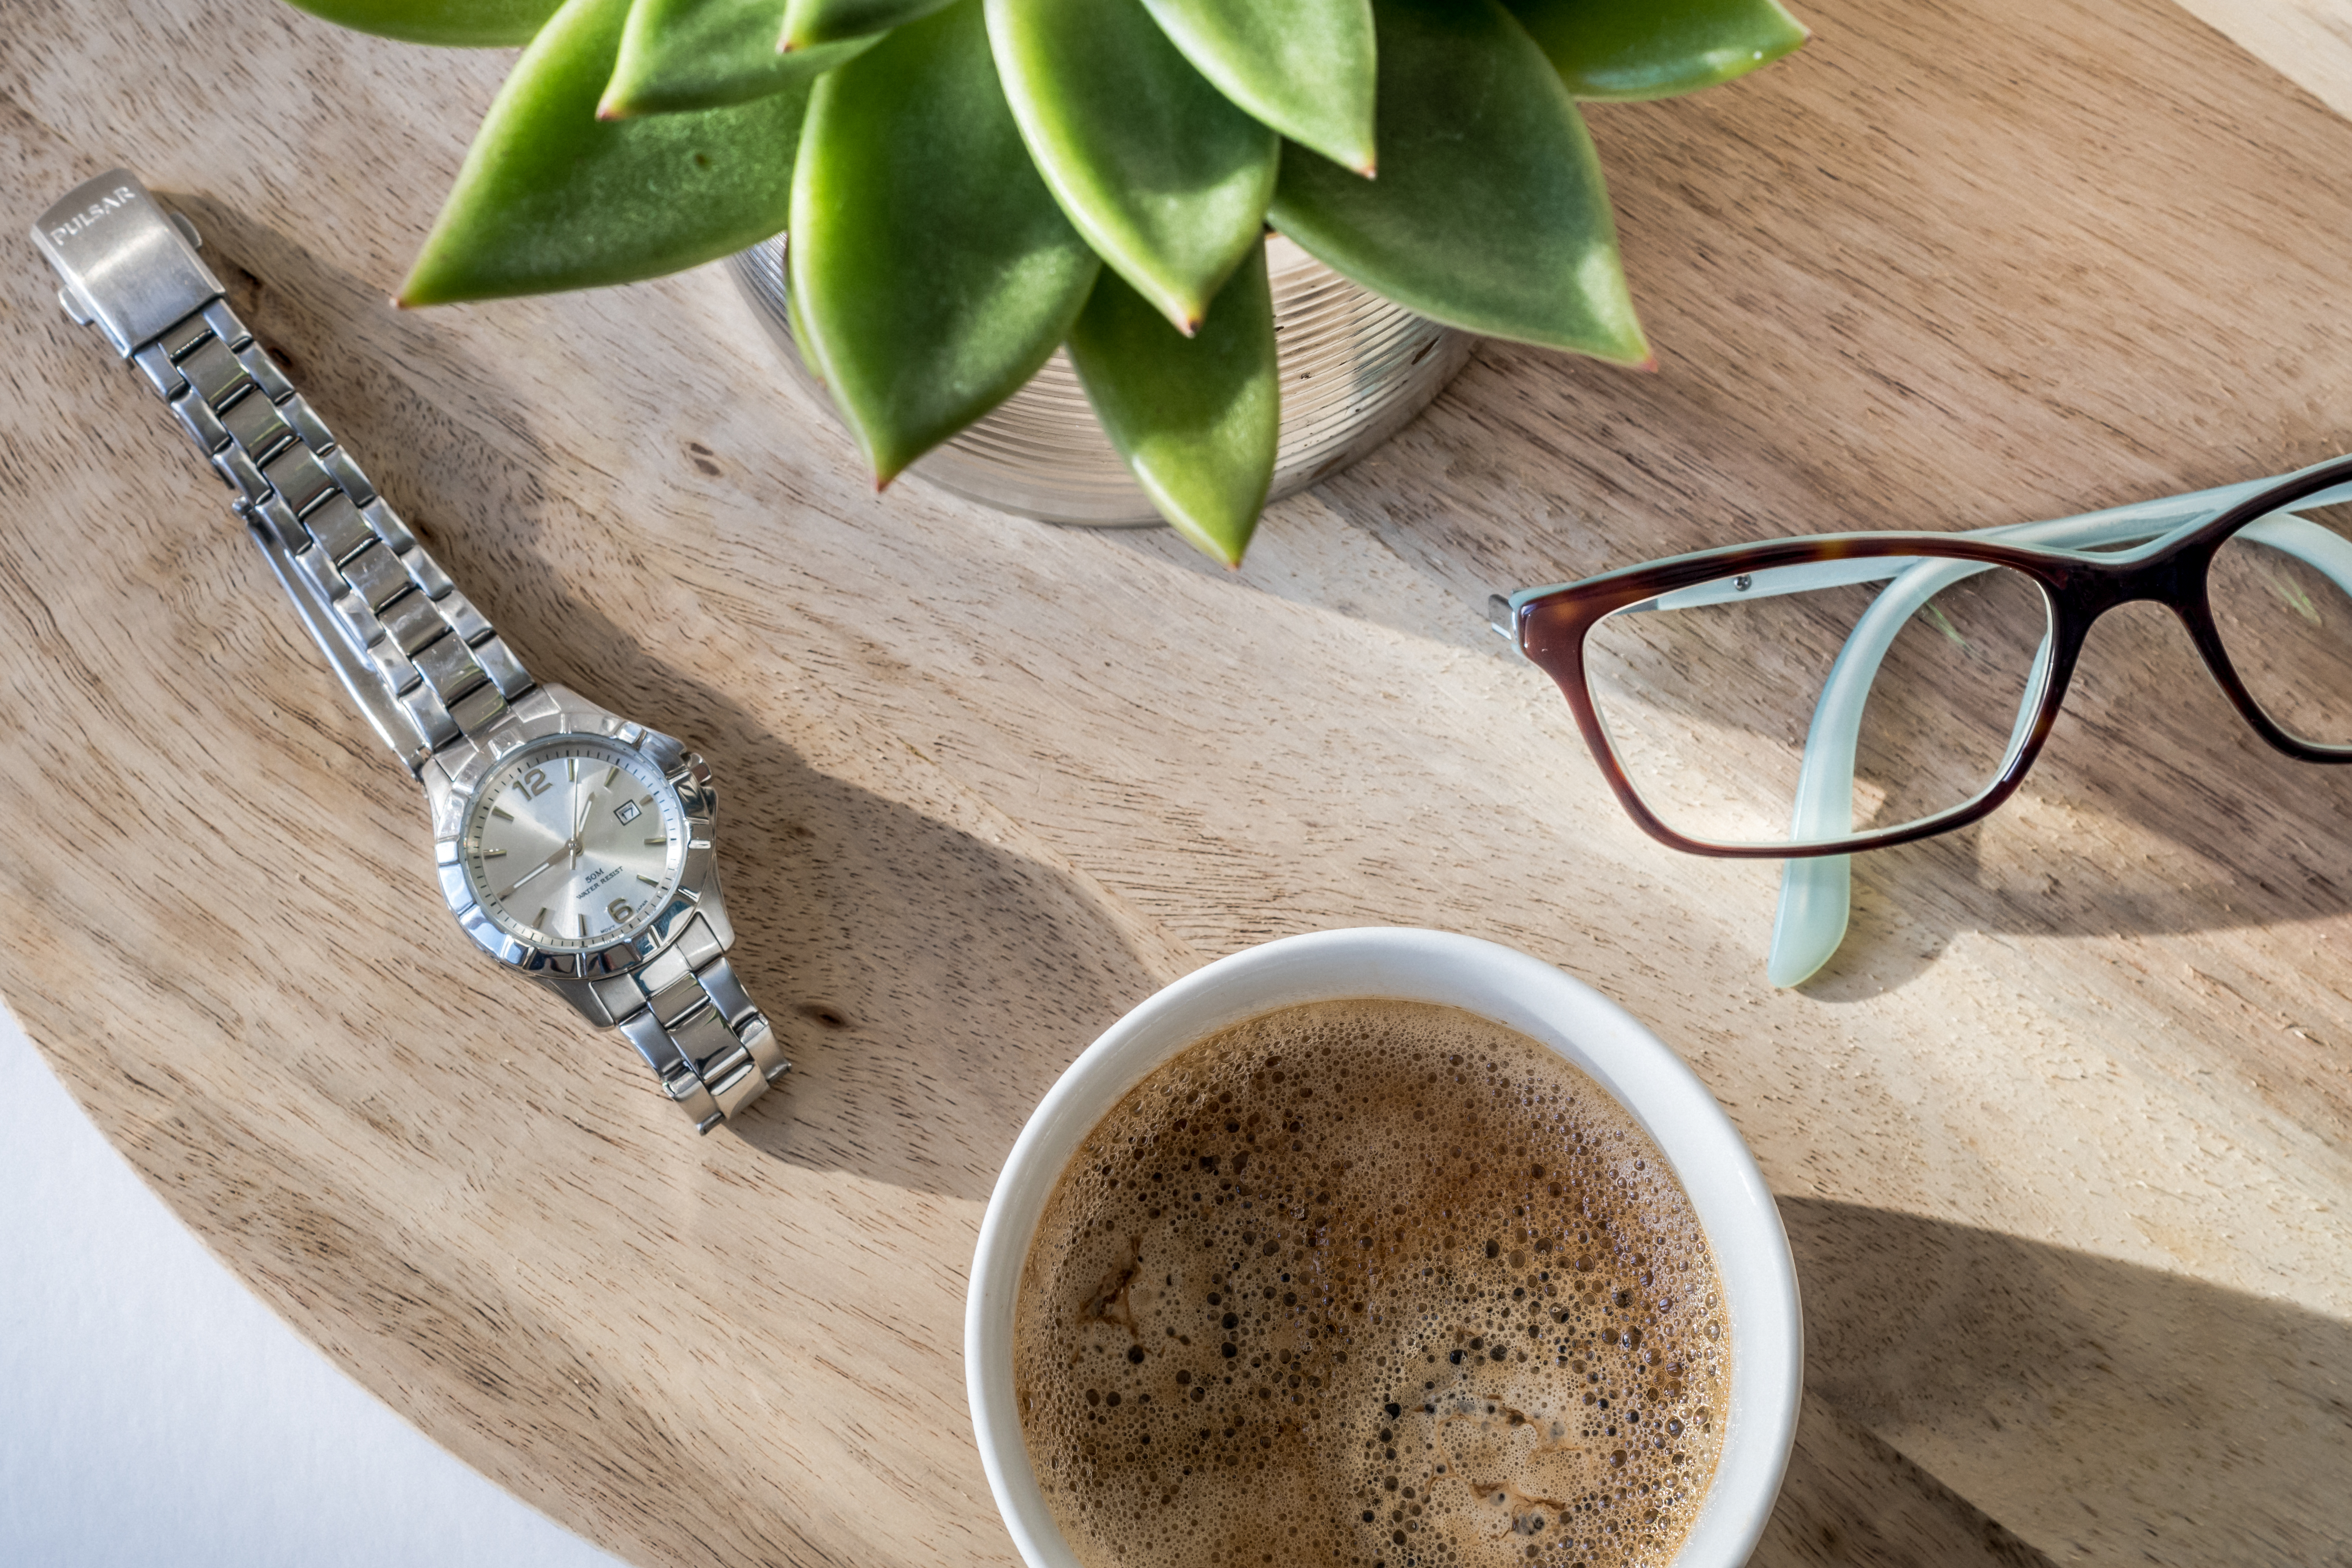 A Cup Of Coffee, Stainless Watch And Eyeglasses On A Table With Ornamental Plant